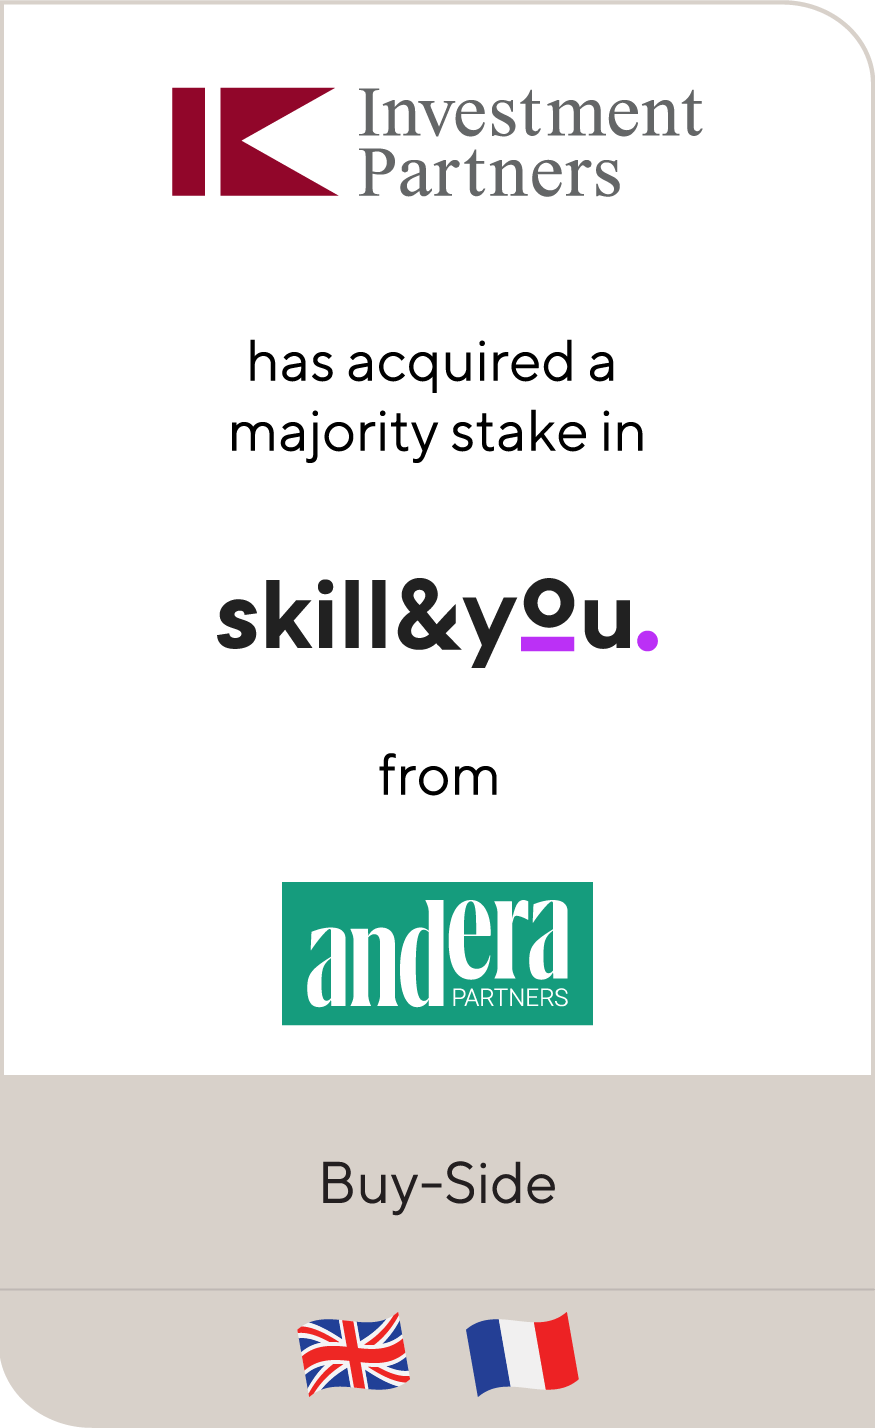 IK Investment Partners Skill & You Andera 2021